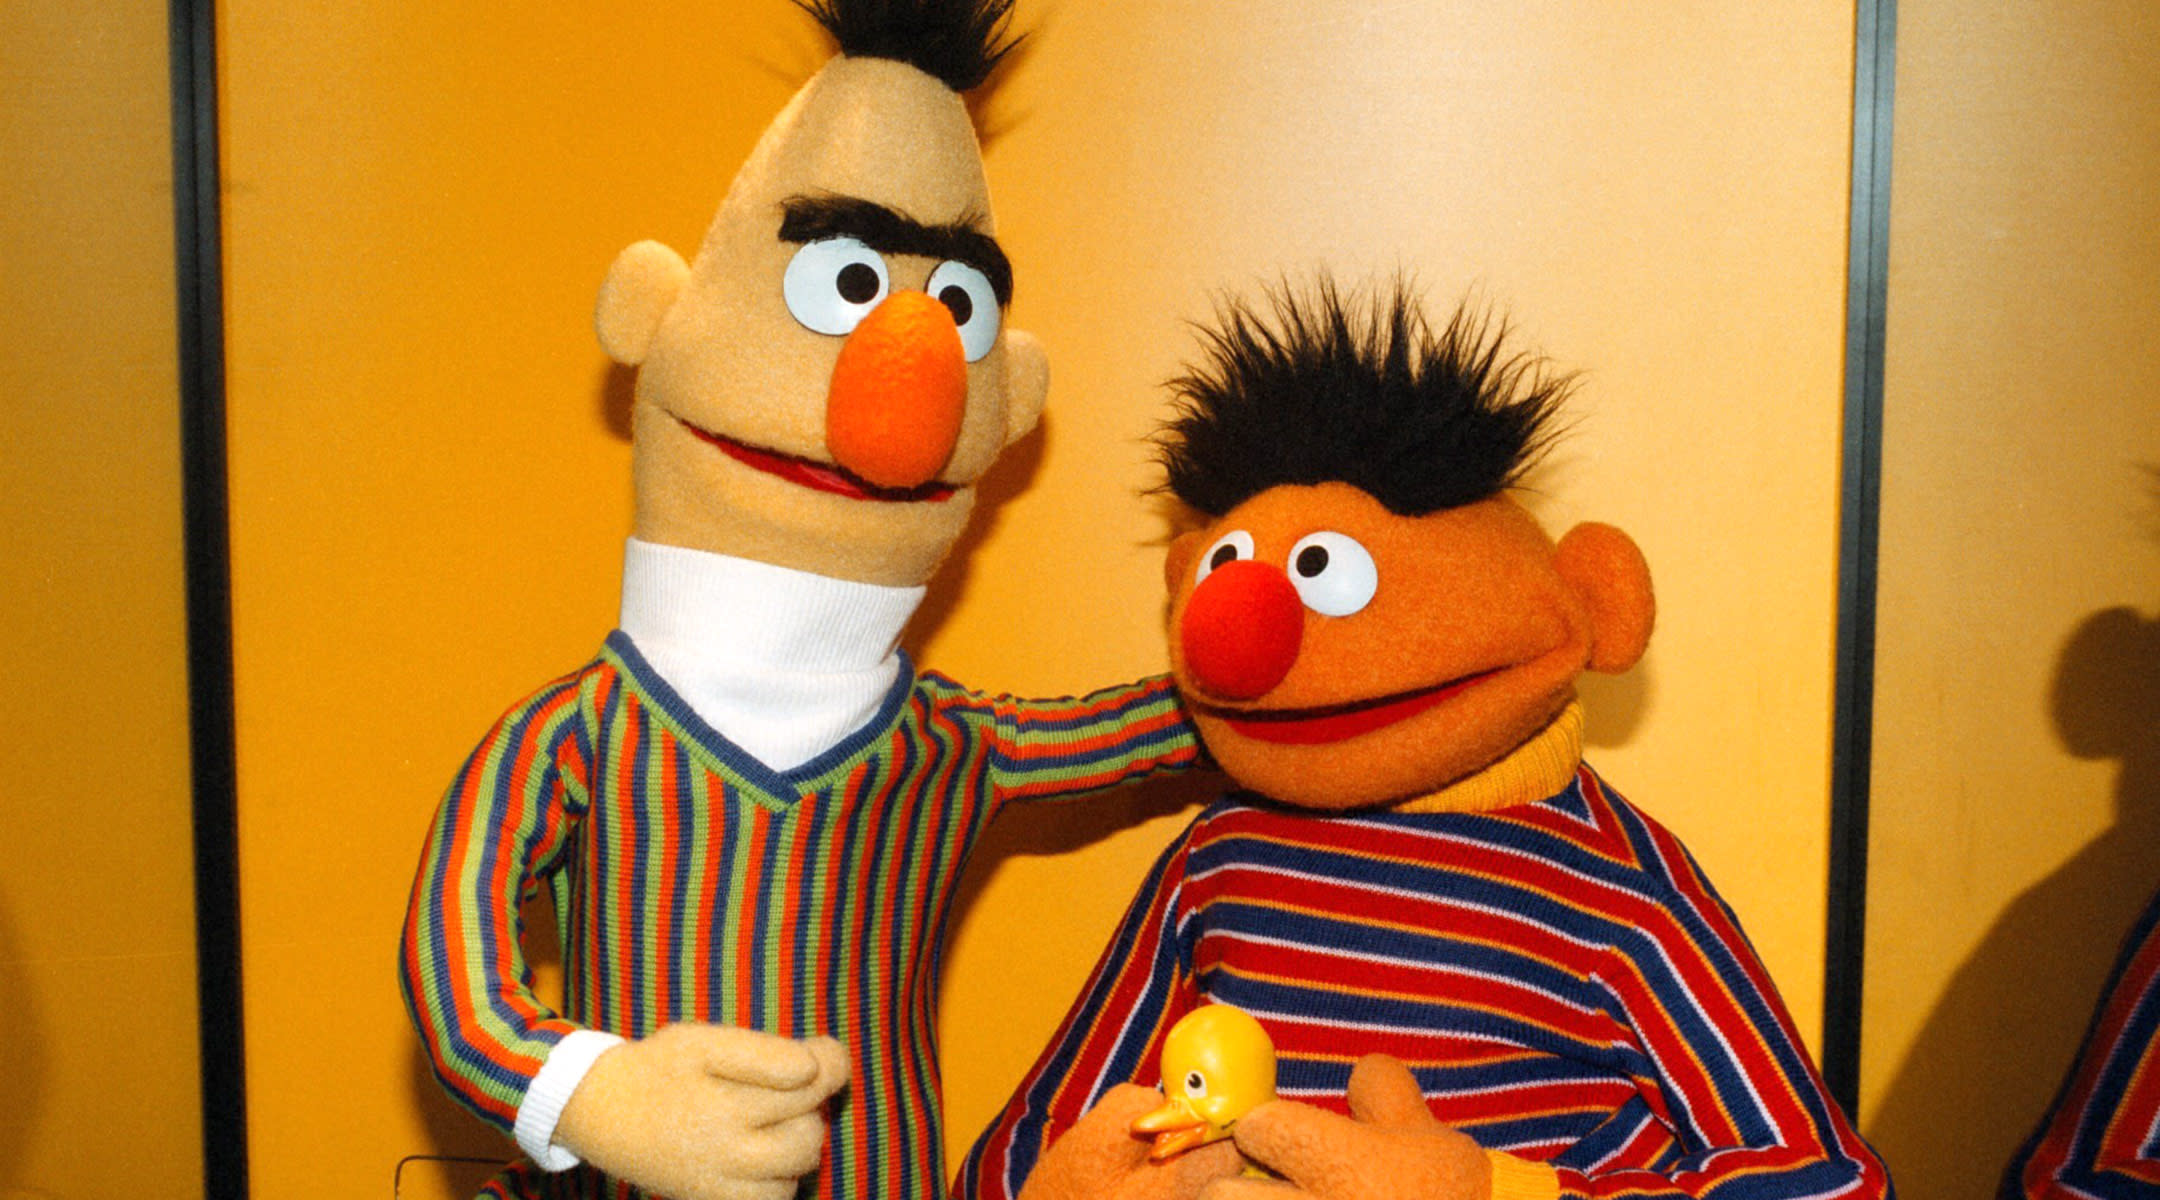 bert and ernie from sesame street which is now proven to improve children's educational level